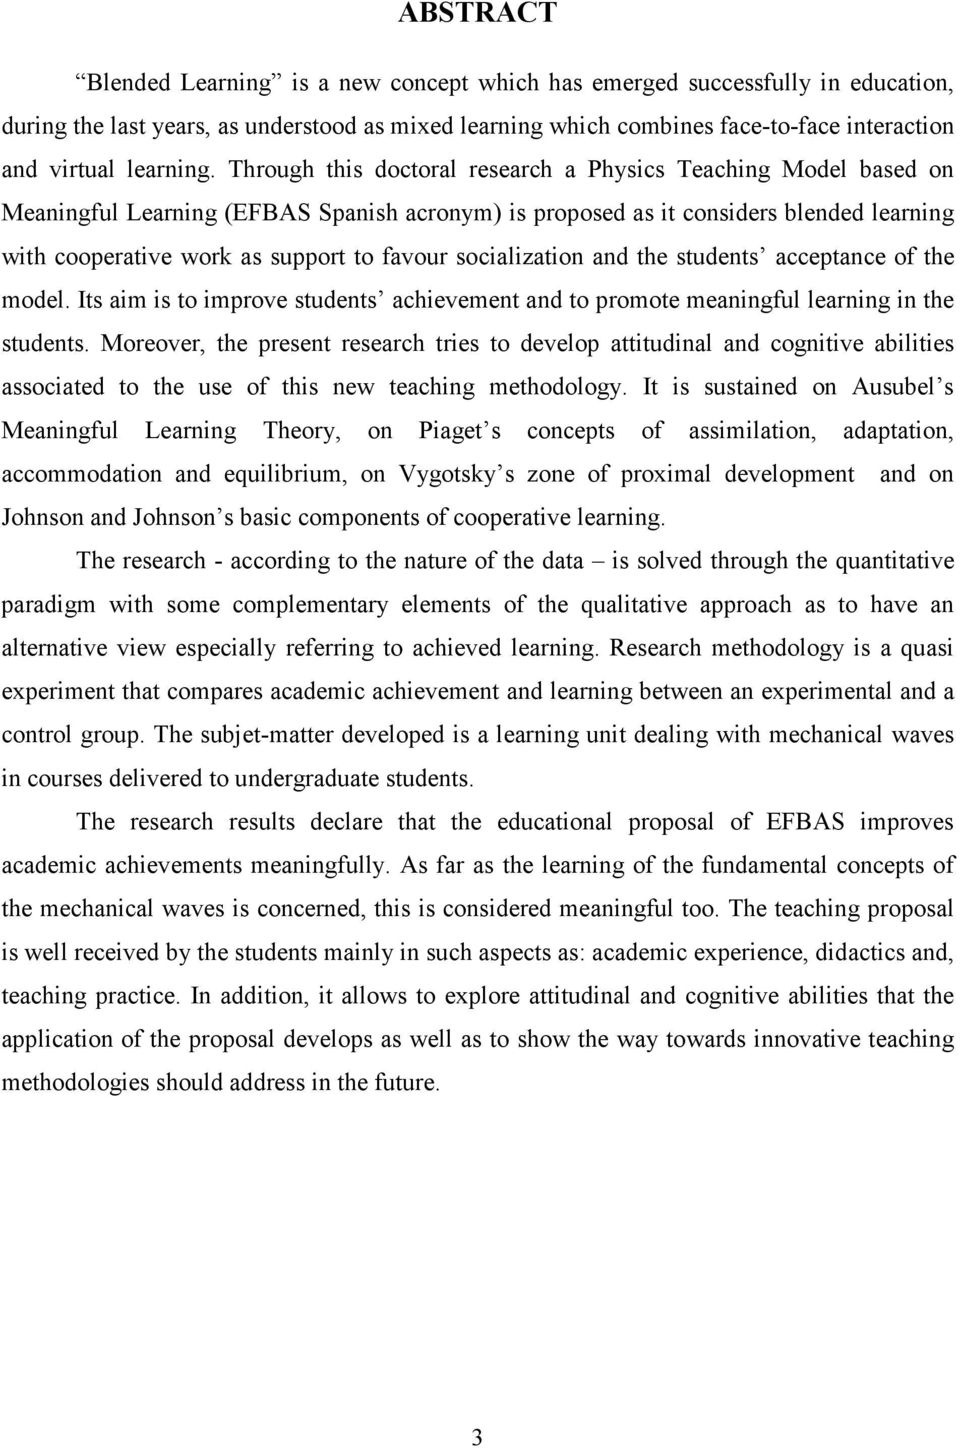 Through this doctoral research a Physics Teaching Model based on Meaningful Learning (EFBAS Spanish acronym) is proposed as it considers blended learning with cooperative work as support to favour